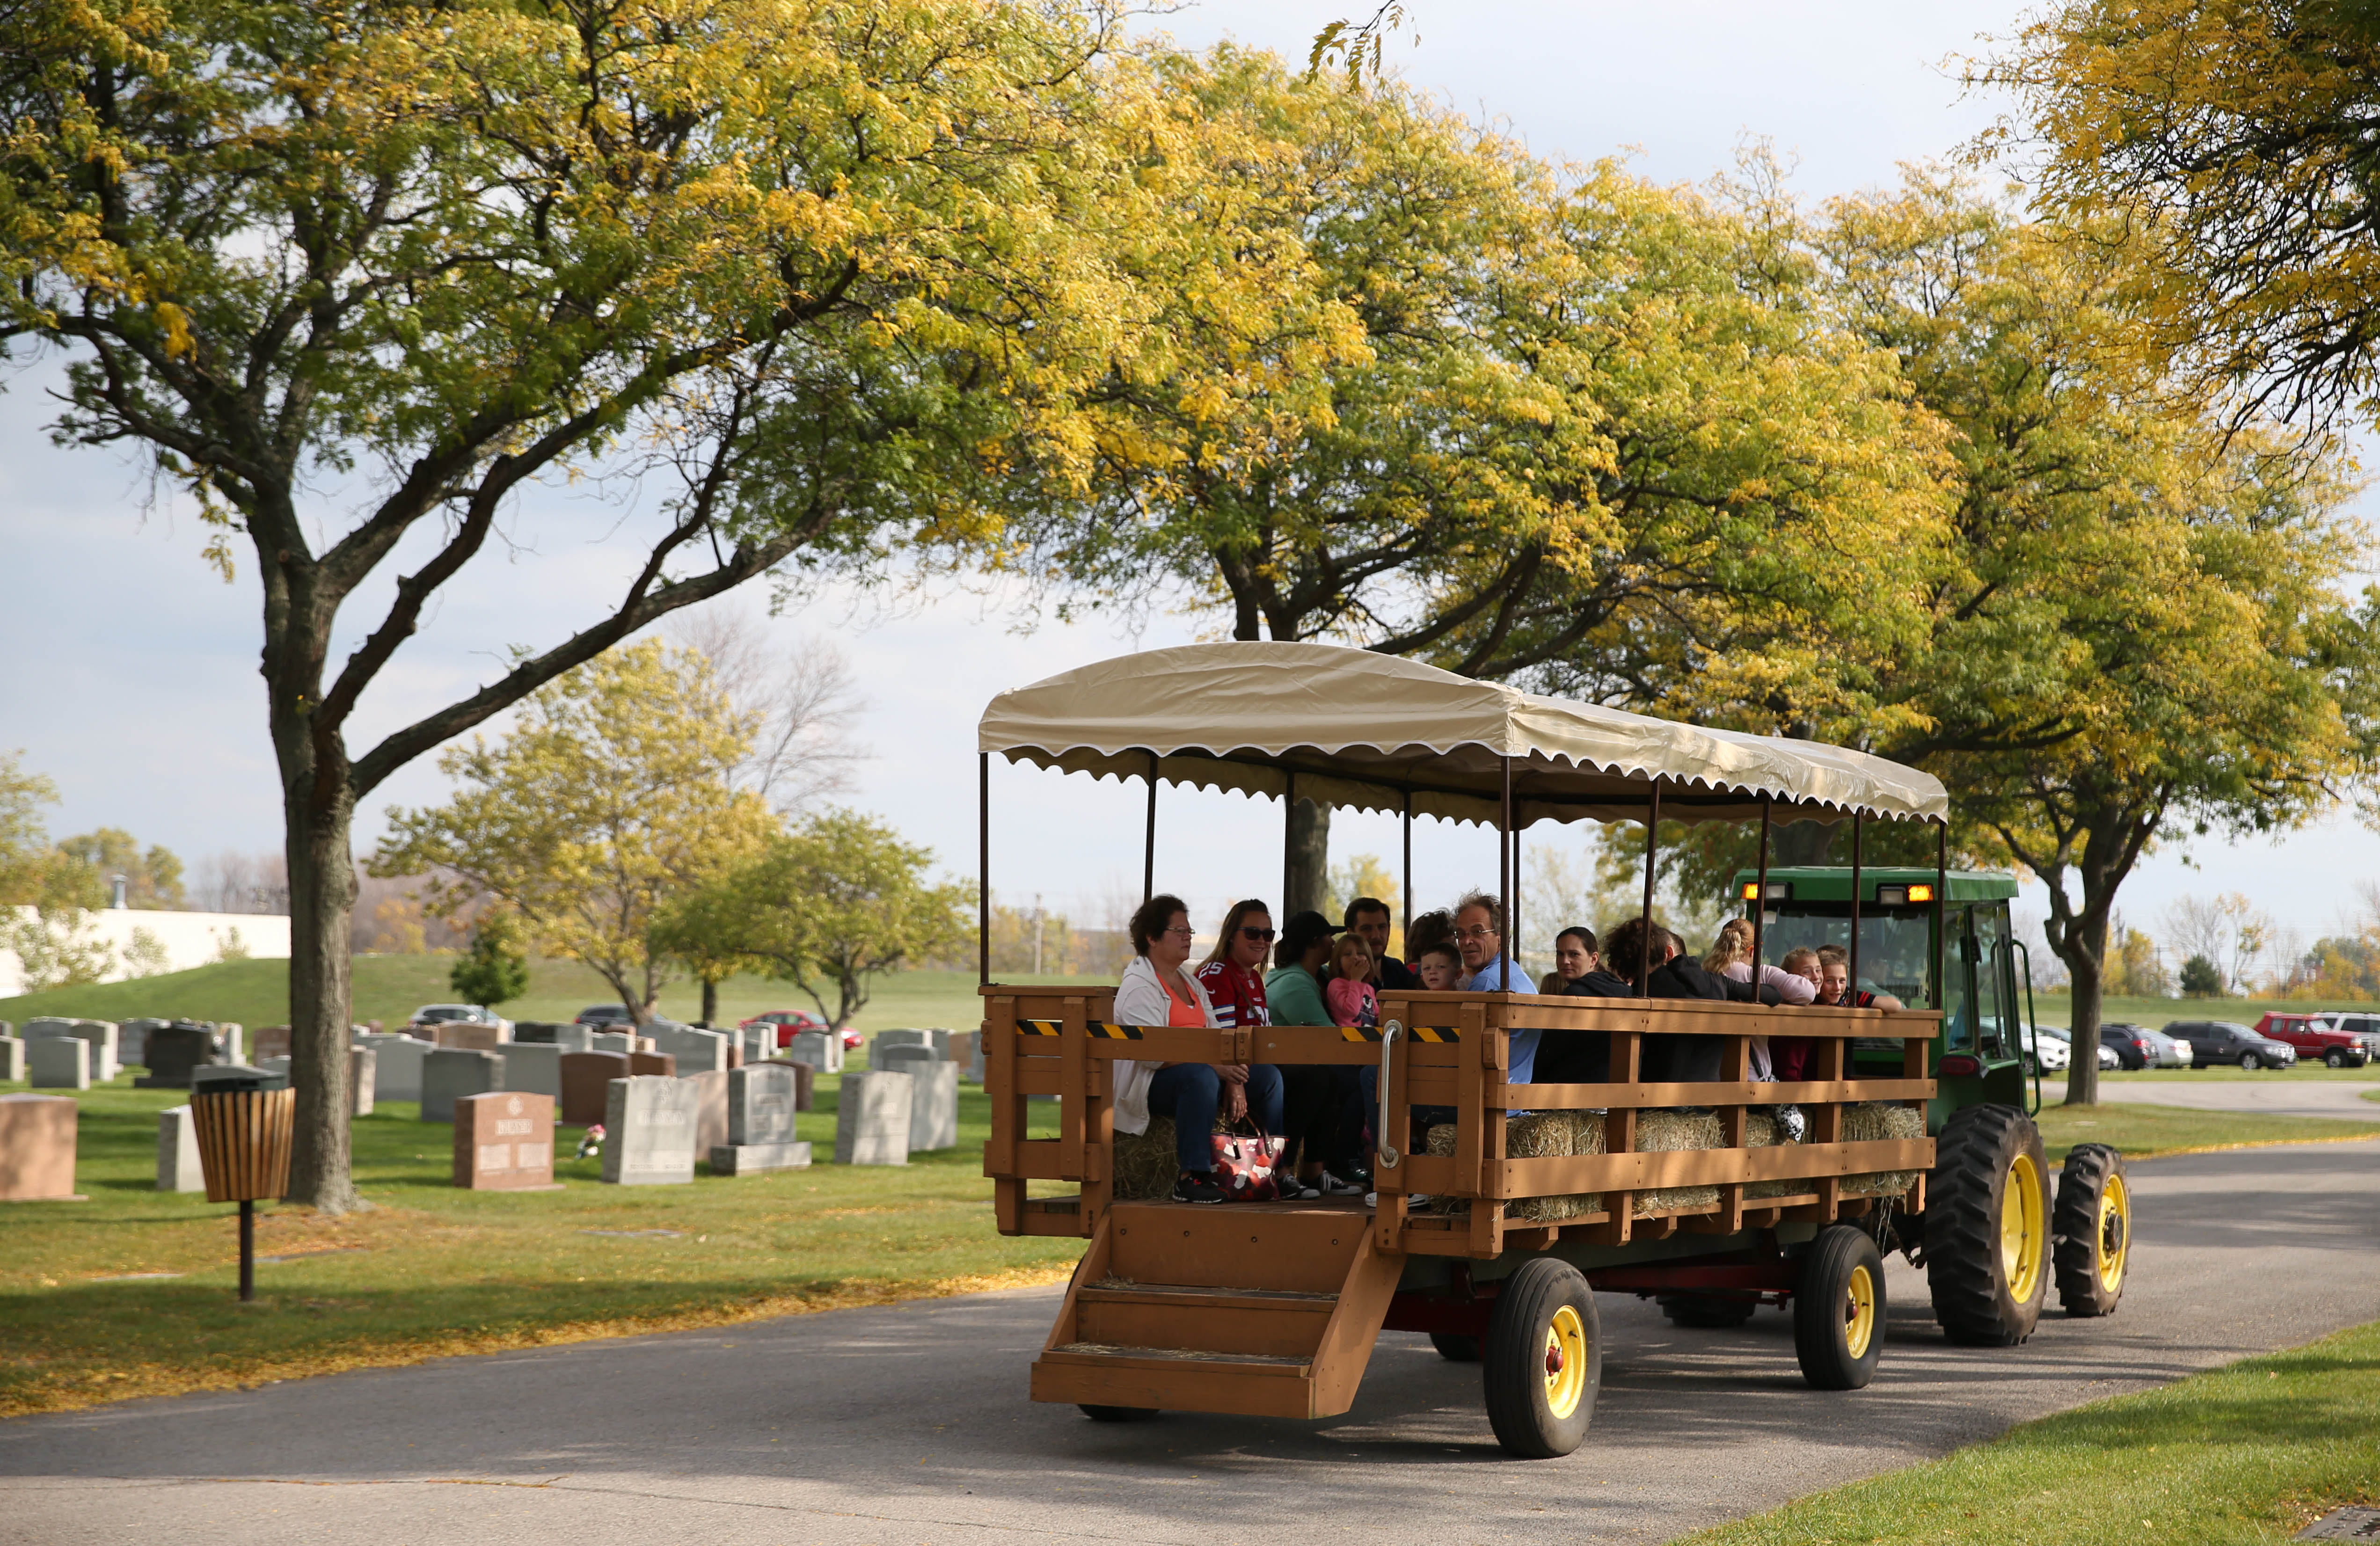 Elmlawn Memorial Park in the Town of Tonawanda, holds its second annual Family Fall Fest, Sunday, Oct. 16, 2016. A hayride through the cemetery was a popular activity. (Sharon Cantillon/Buffalo News)